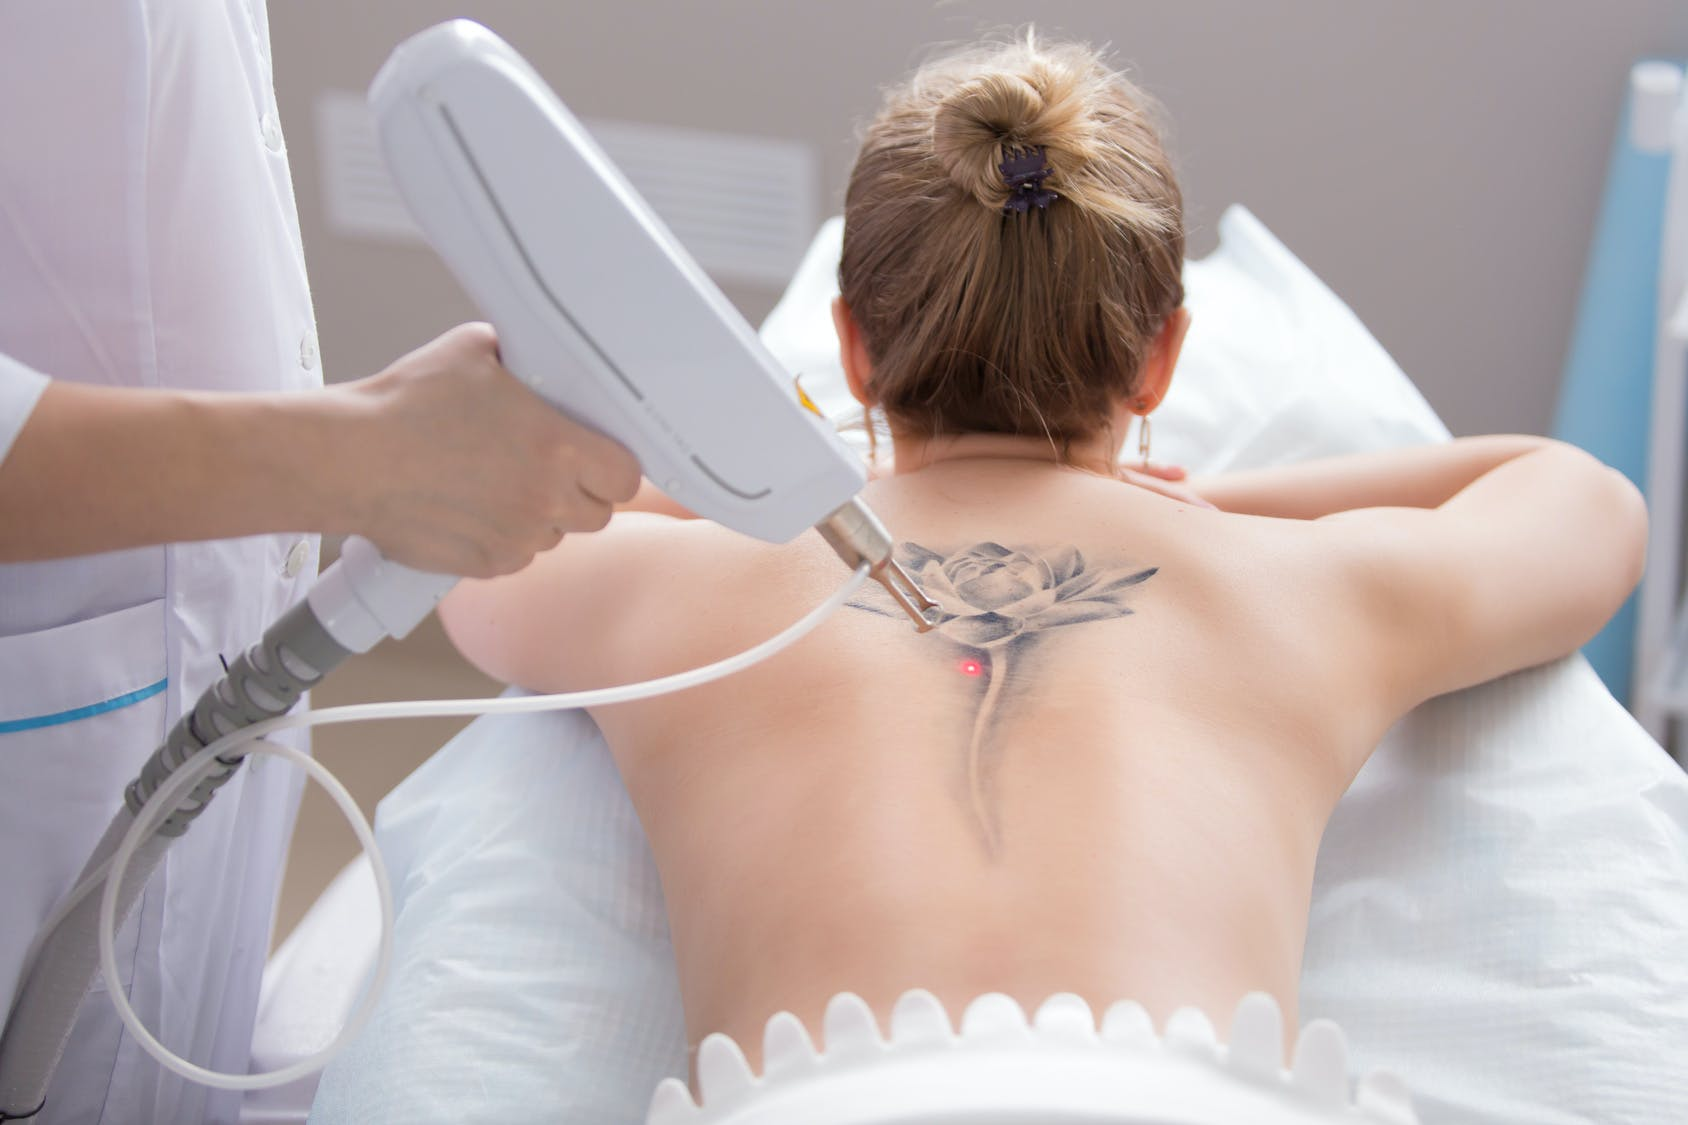 The 7 Most Common Tattoos Women Get Removed According To Laser Surgeons